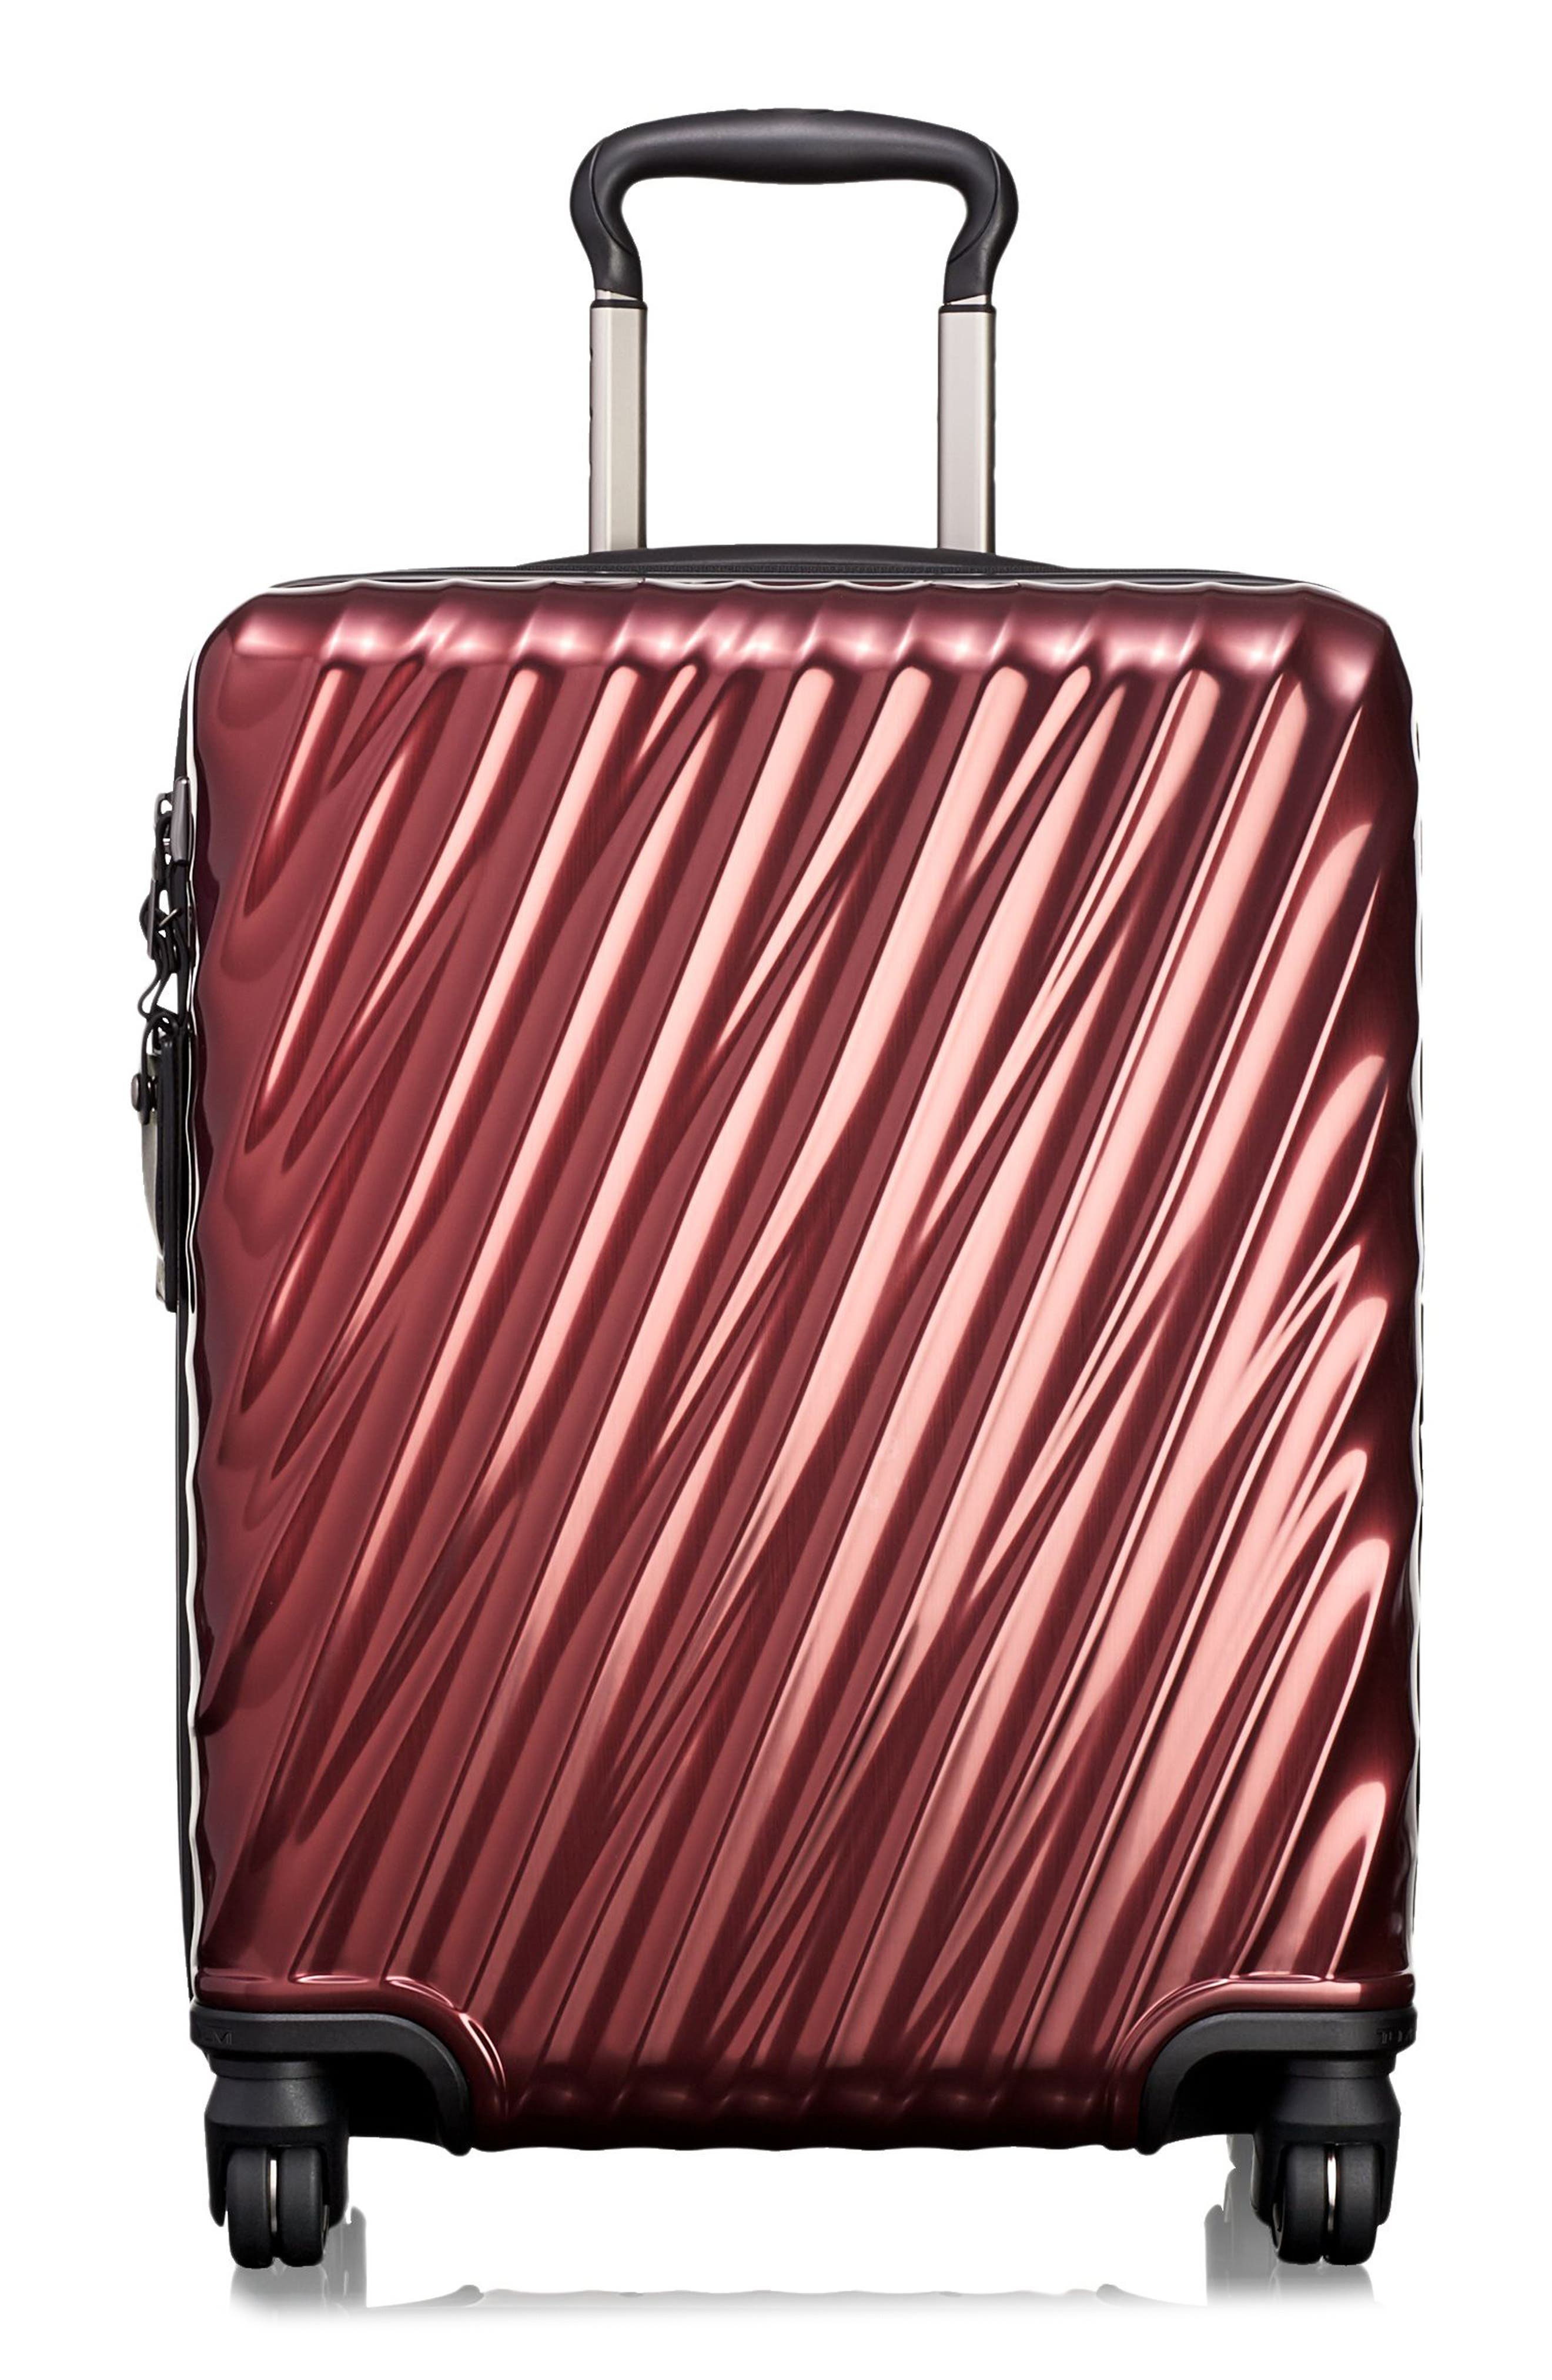 TUMI 19 Degree 22 Inch Continental Wheeled Aluminum Carry-On